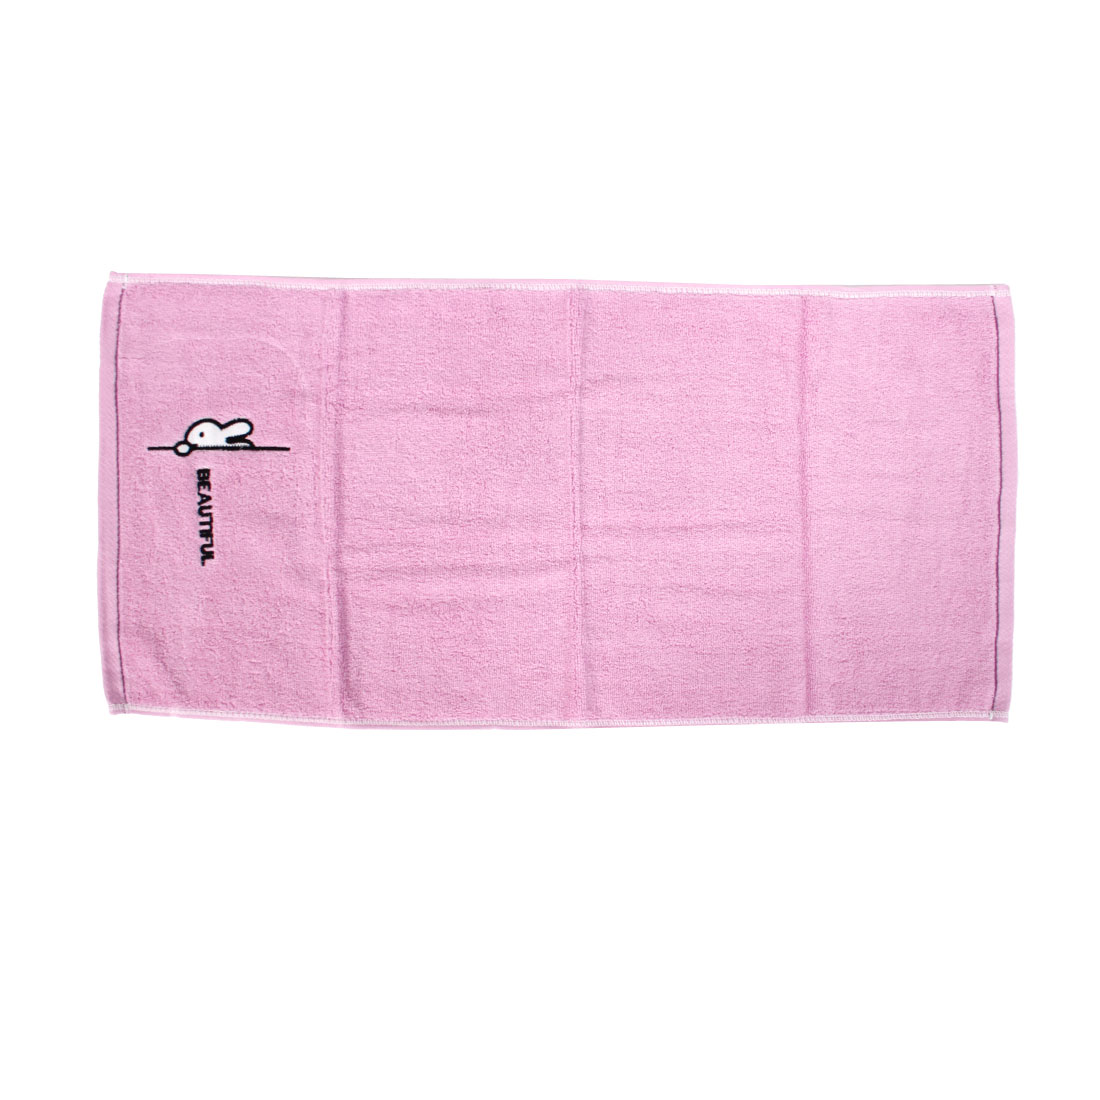 Cotton Blend Bath Hair Washing Hand Face Towels Washcloths Light Pink 34 x 72cm